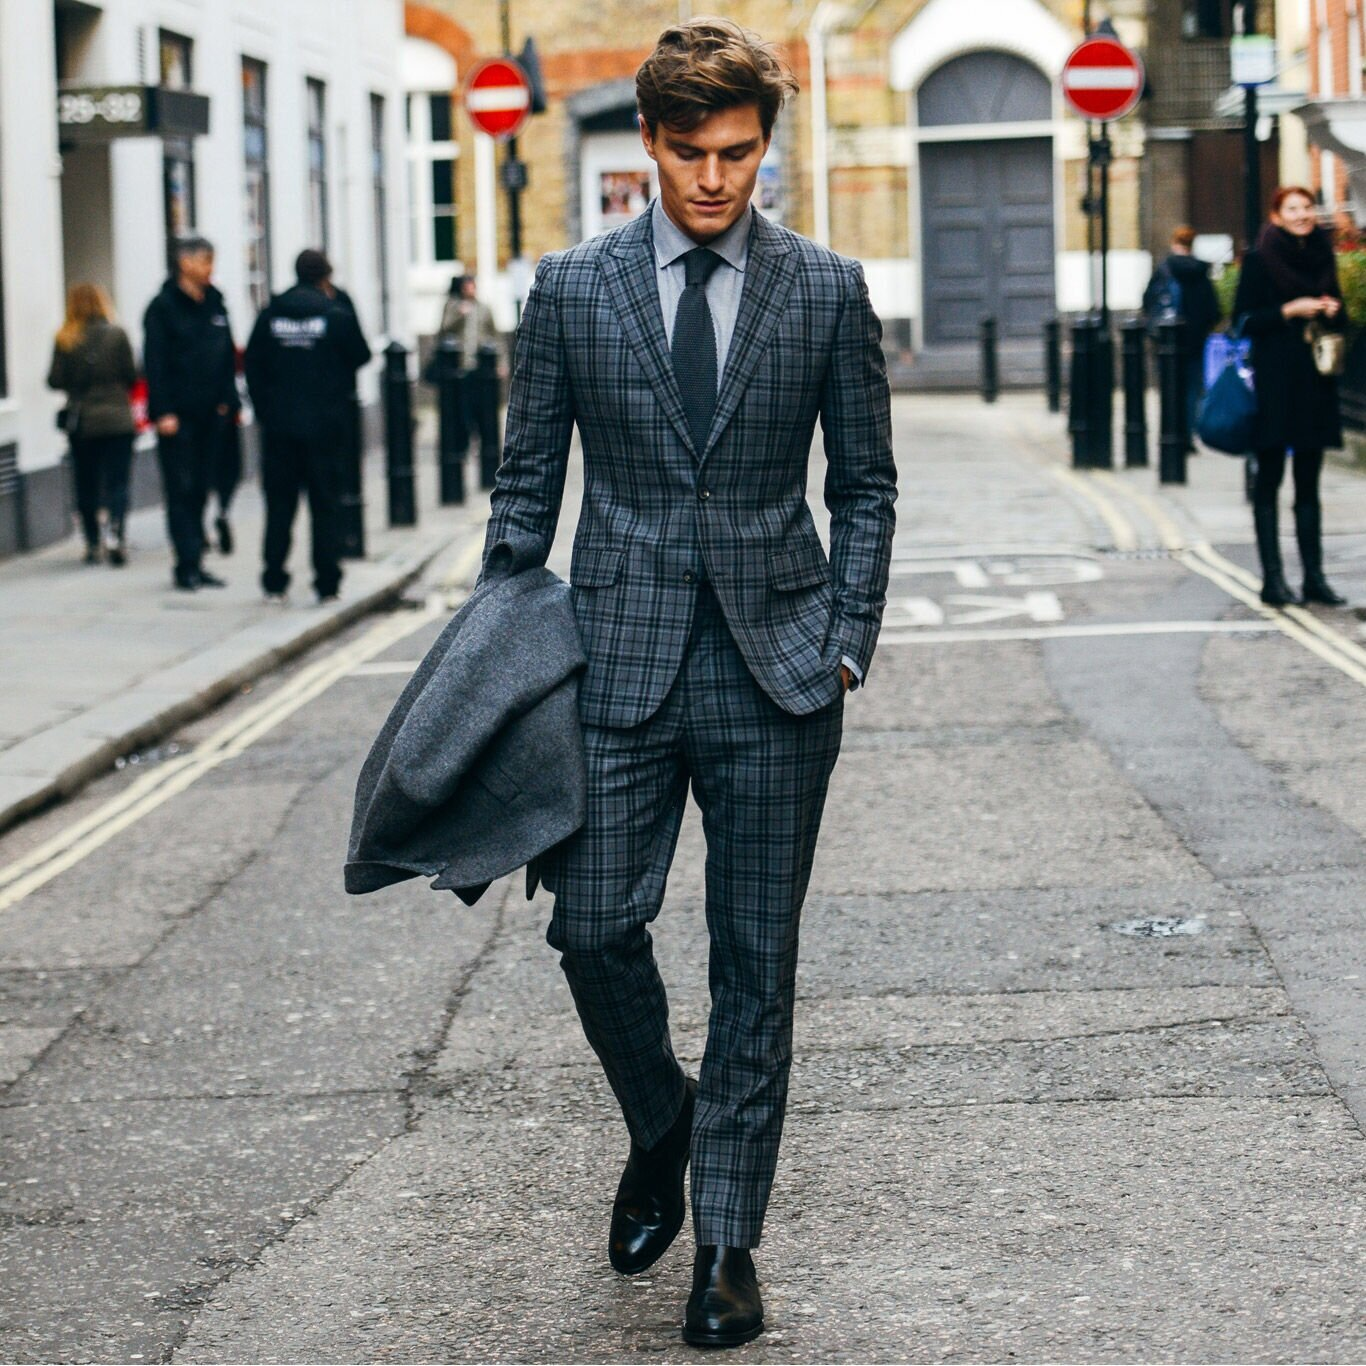 152231-Tommy-Ton-In-London-Street-Style-At-2015-Fall-Menswear-Shows-.jpg